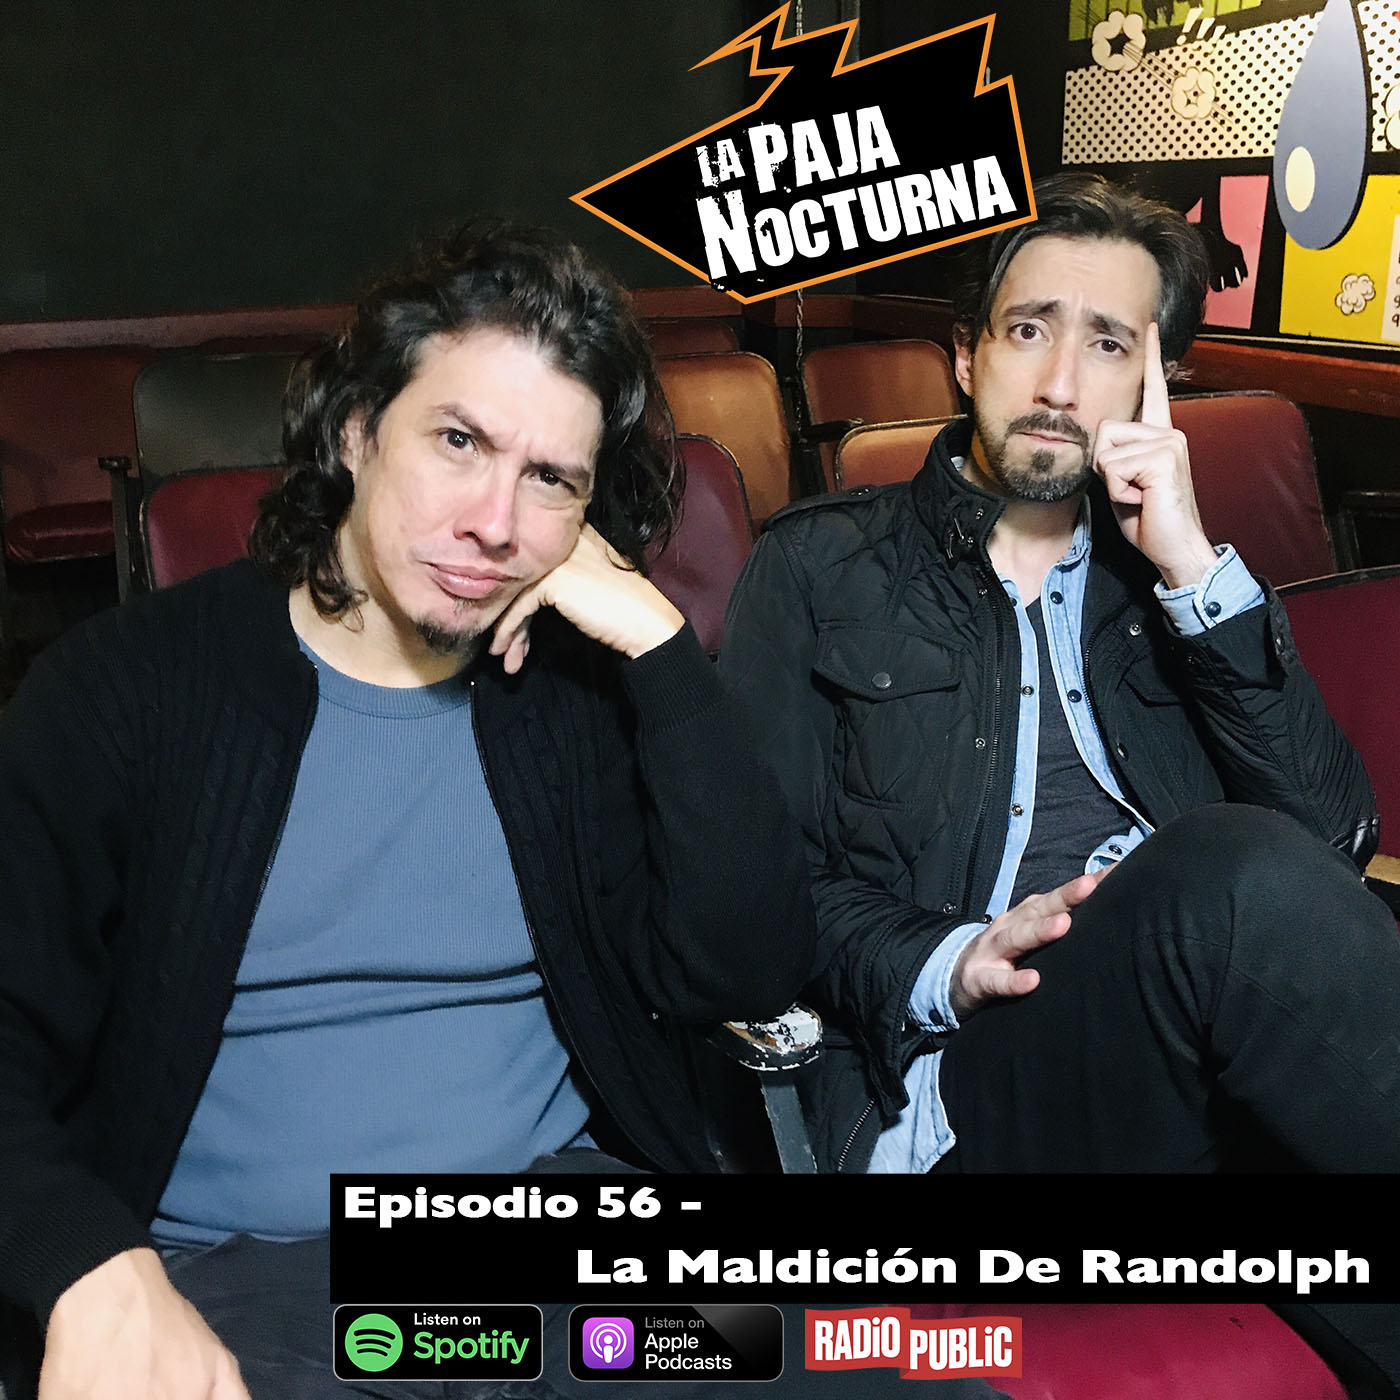 La paja nocturna podcast Episodio 56